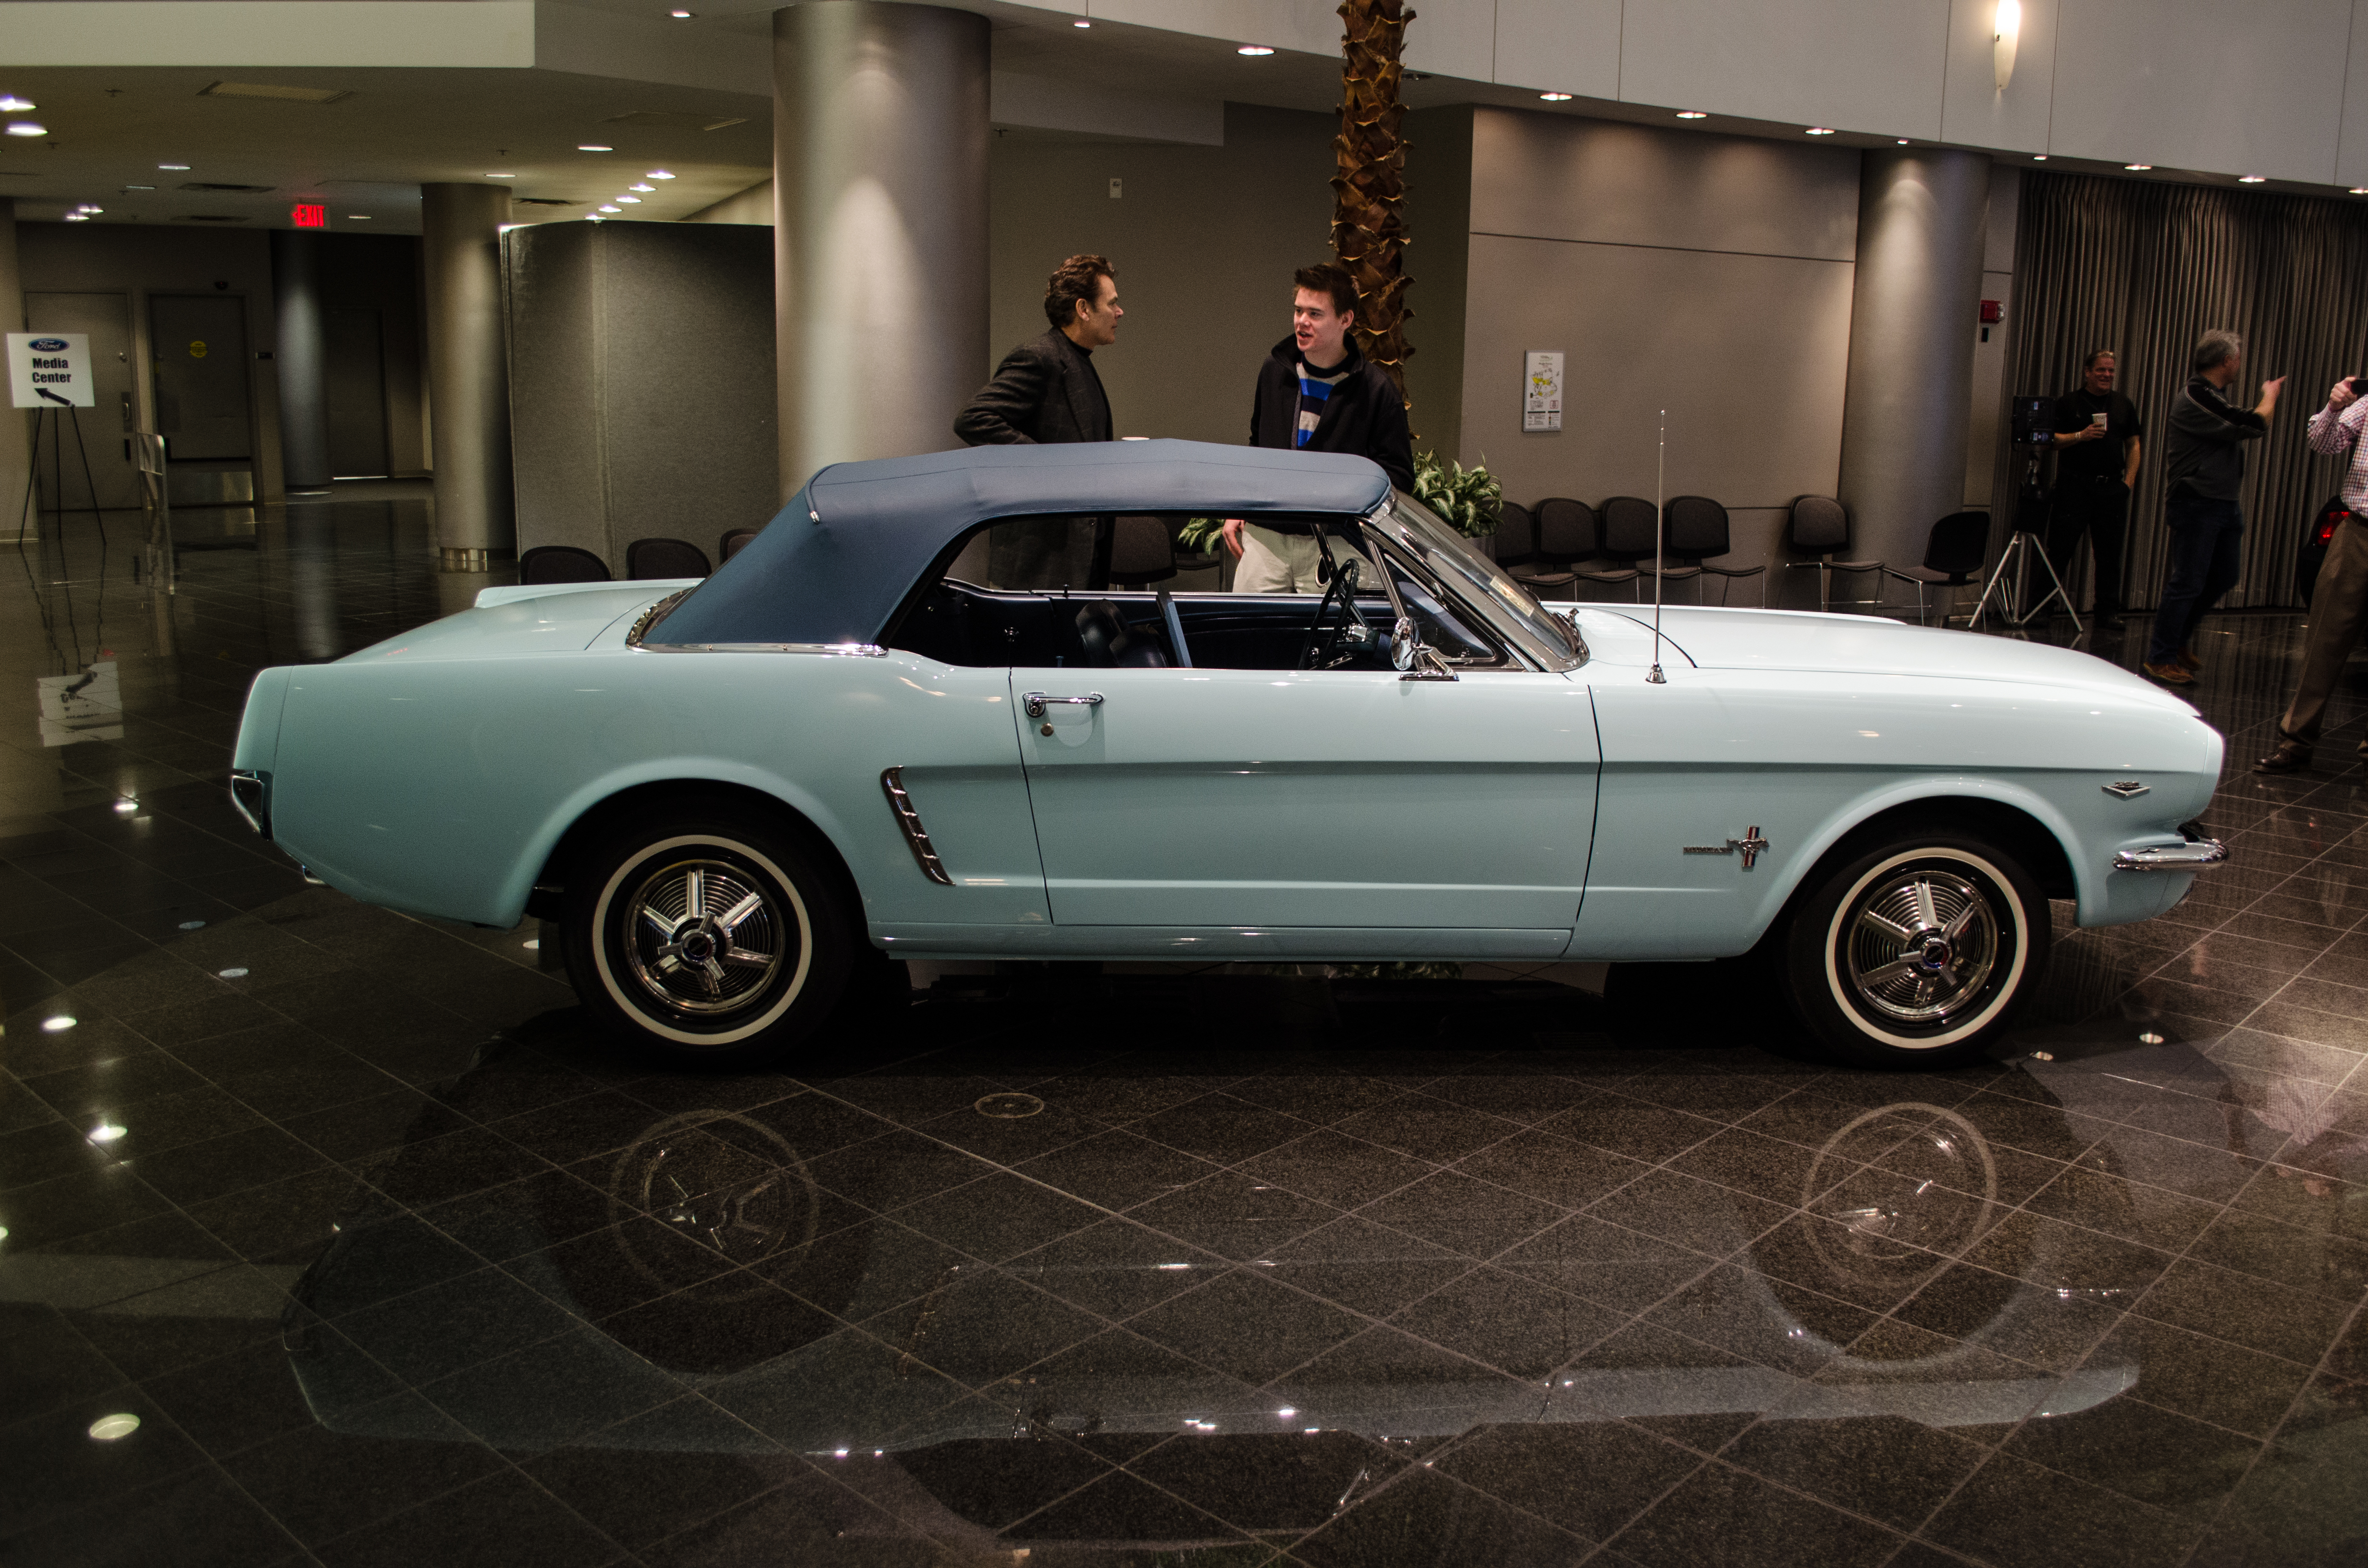 Old Mustang Convertible. Ford Mustang Convertible With Old Mustang ...